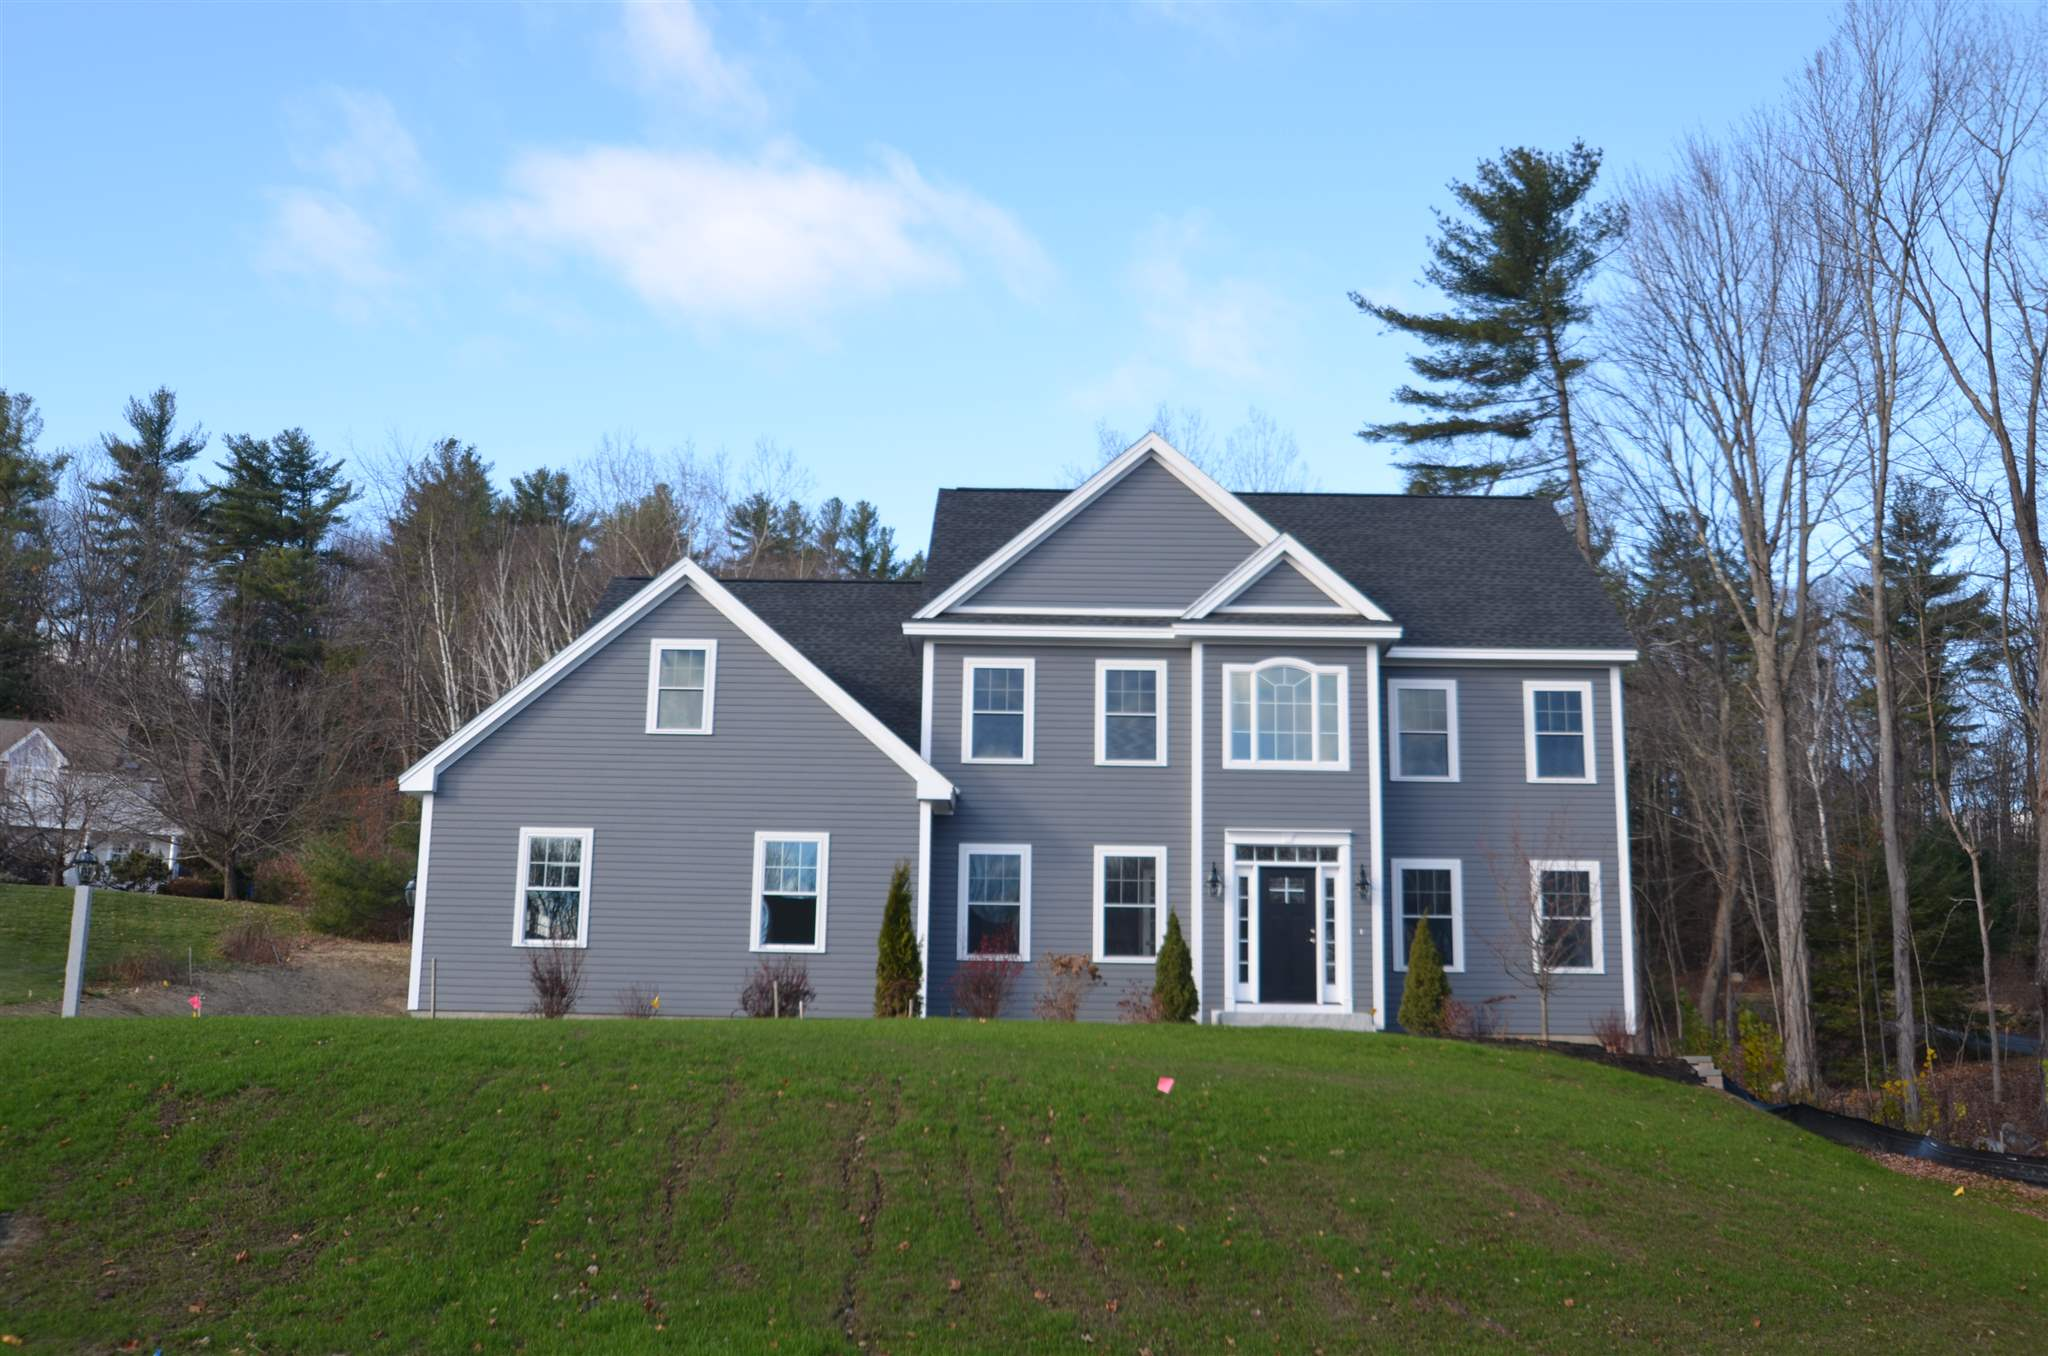 Photo of 26-7 Wallace Road Bedford NH 03110